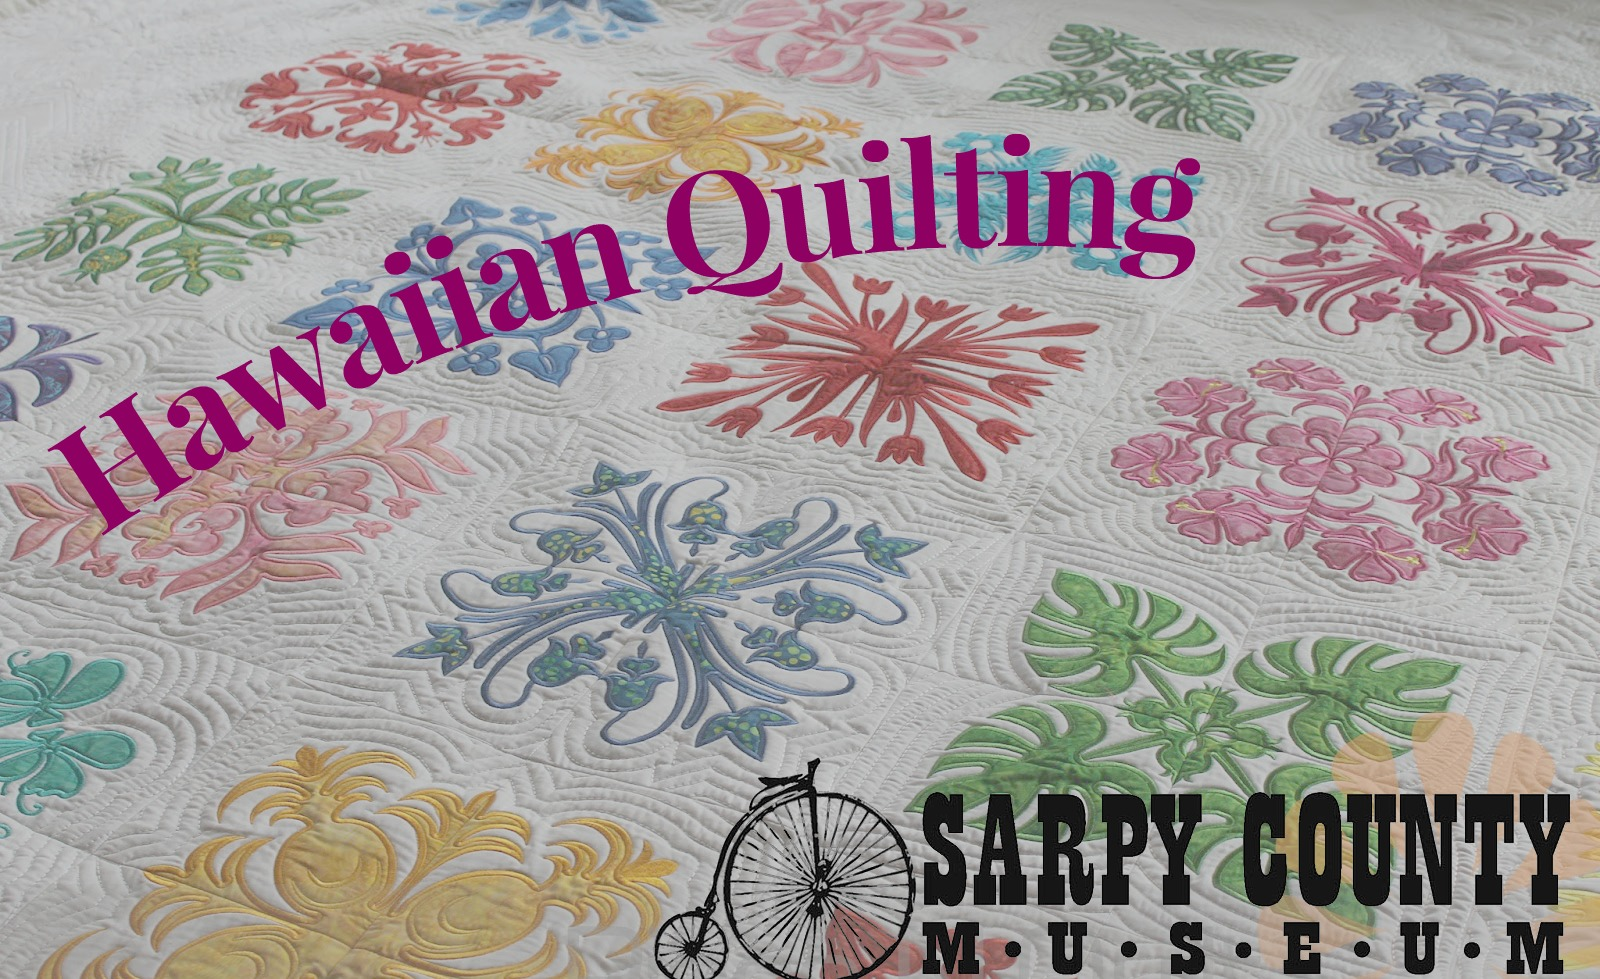 quilting by thanks your custom carole gorgeous me for piece hawaiian natalia n letting quilt machine